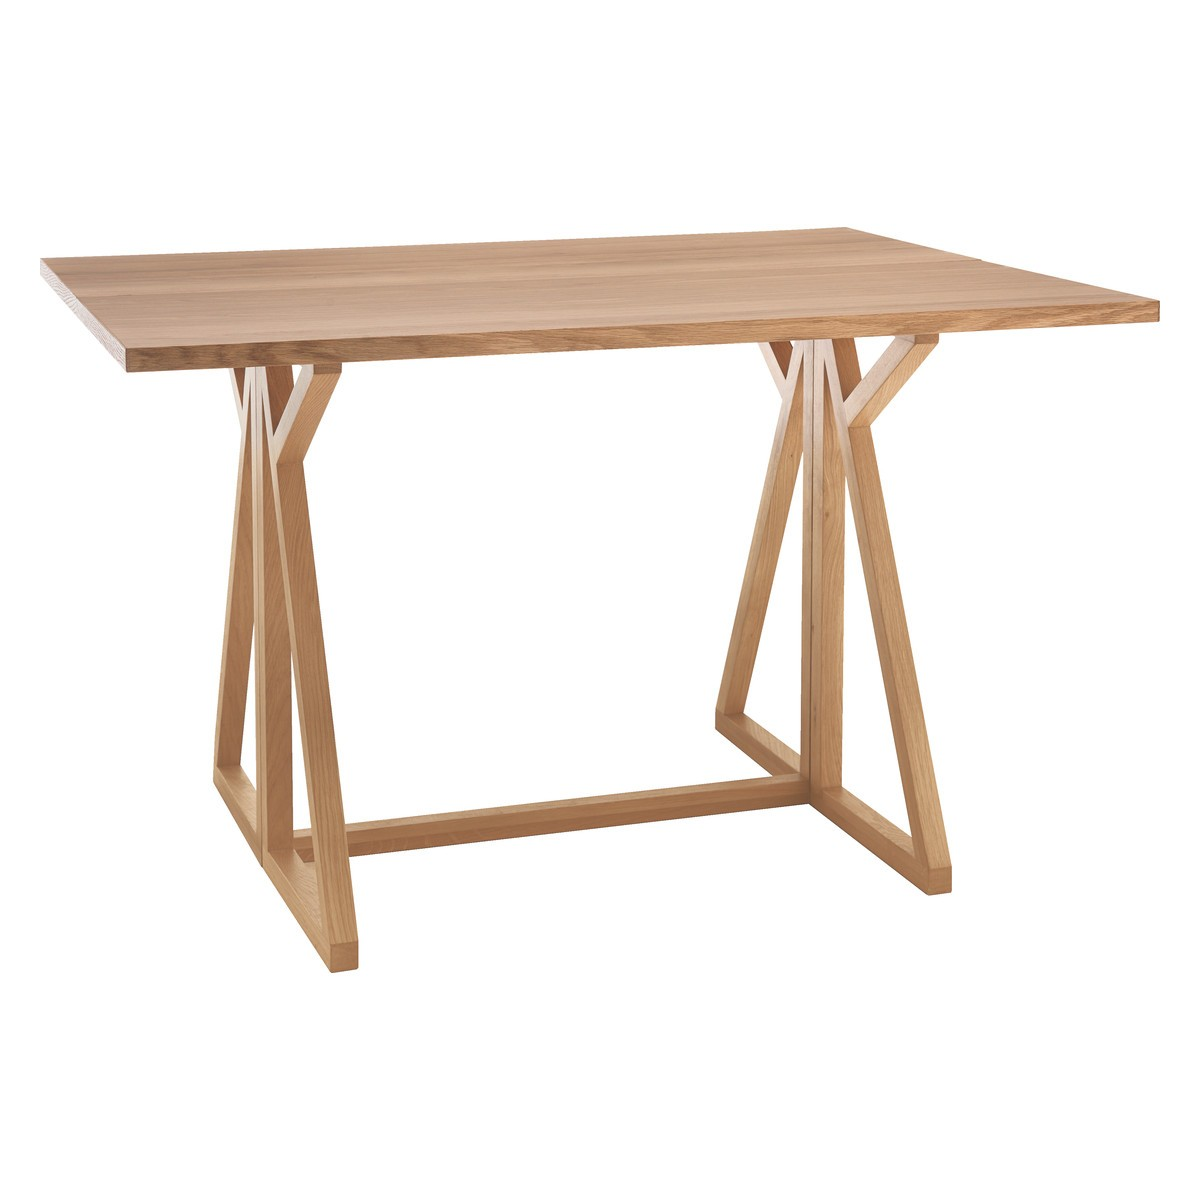 Folding 6ft Table at Costco | 8 Foot Folding Table Walmart | Costco Folding Tables